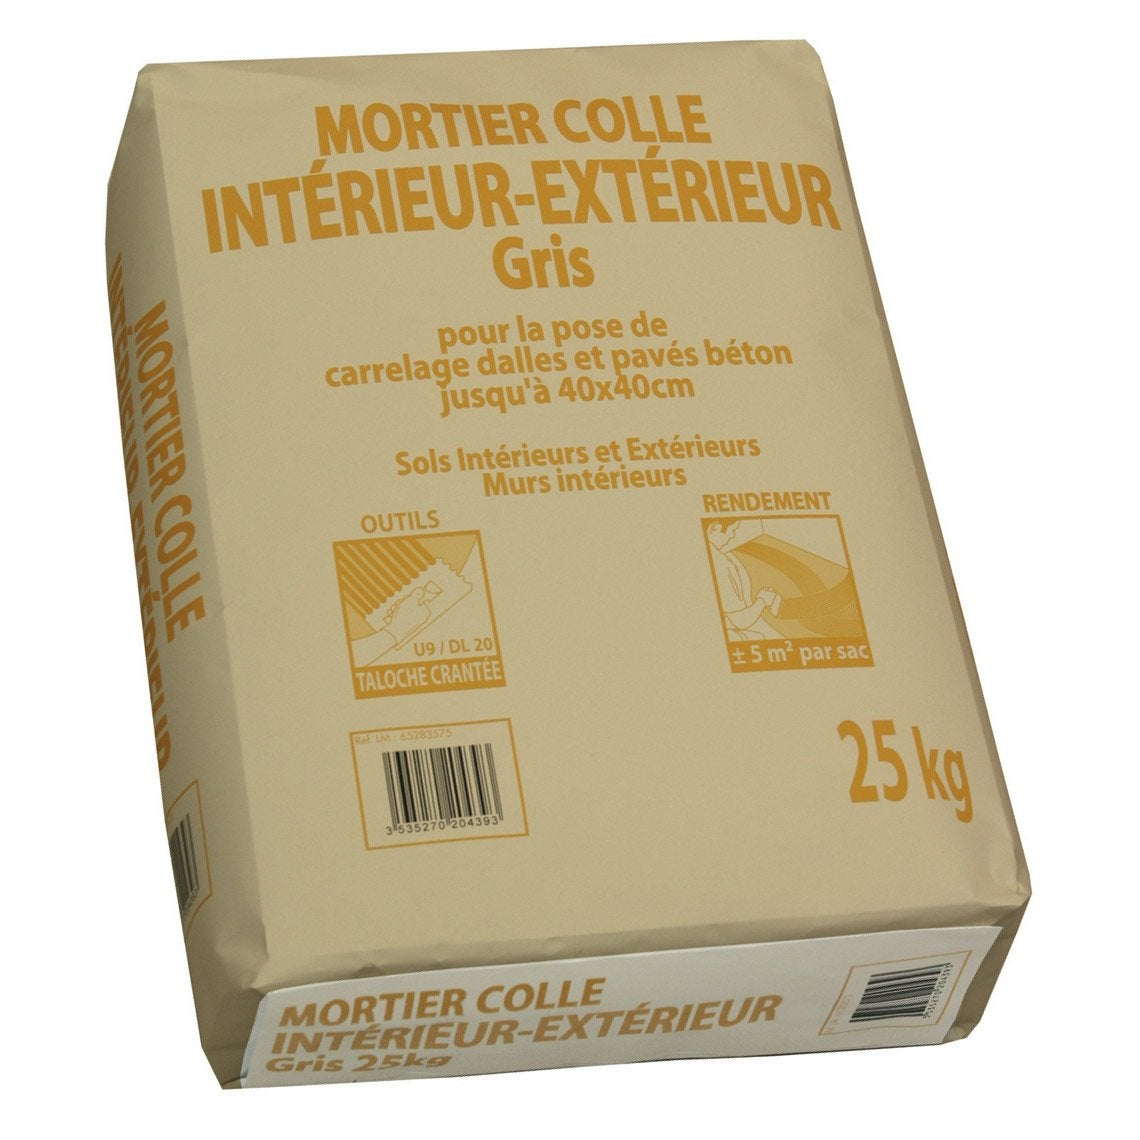 Colle pour carrelage int rieur ext rieur gris prb 25kg for Dosage ciment pour chape carrelage